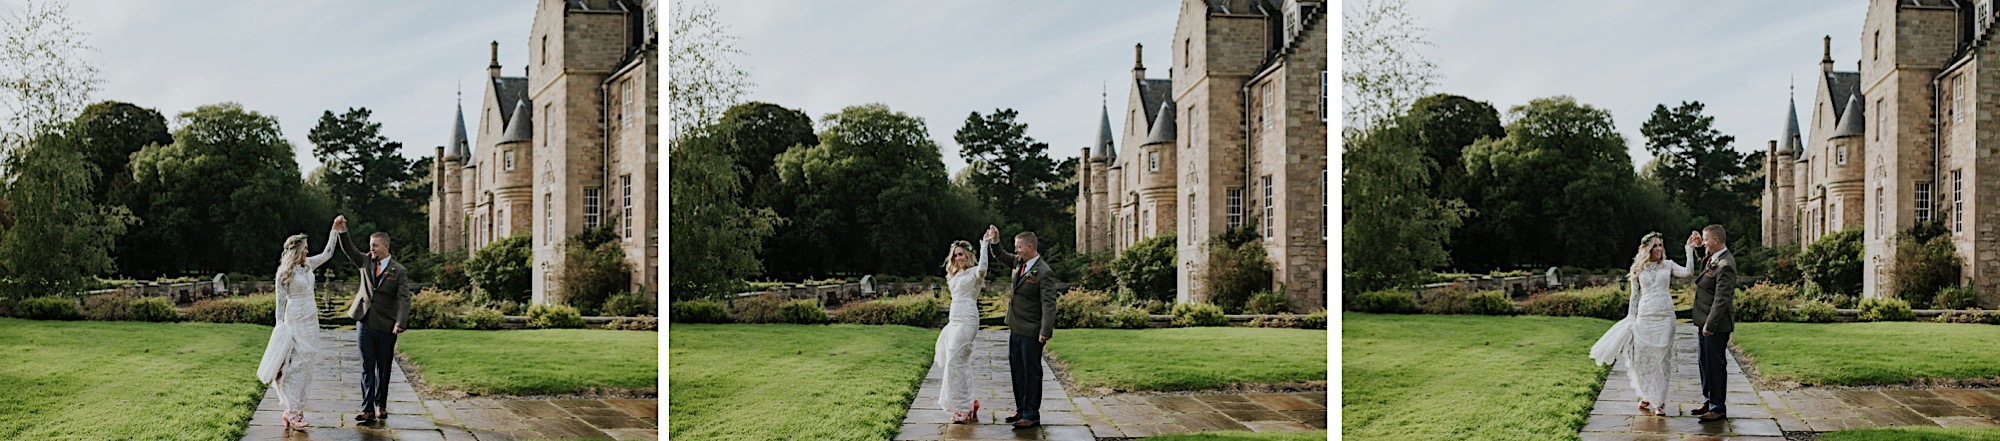 carberry tower edinburgh elopement